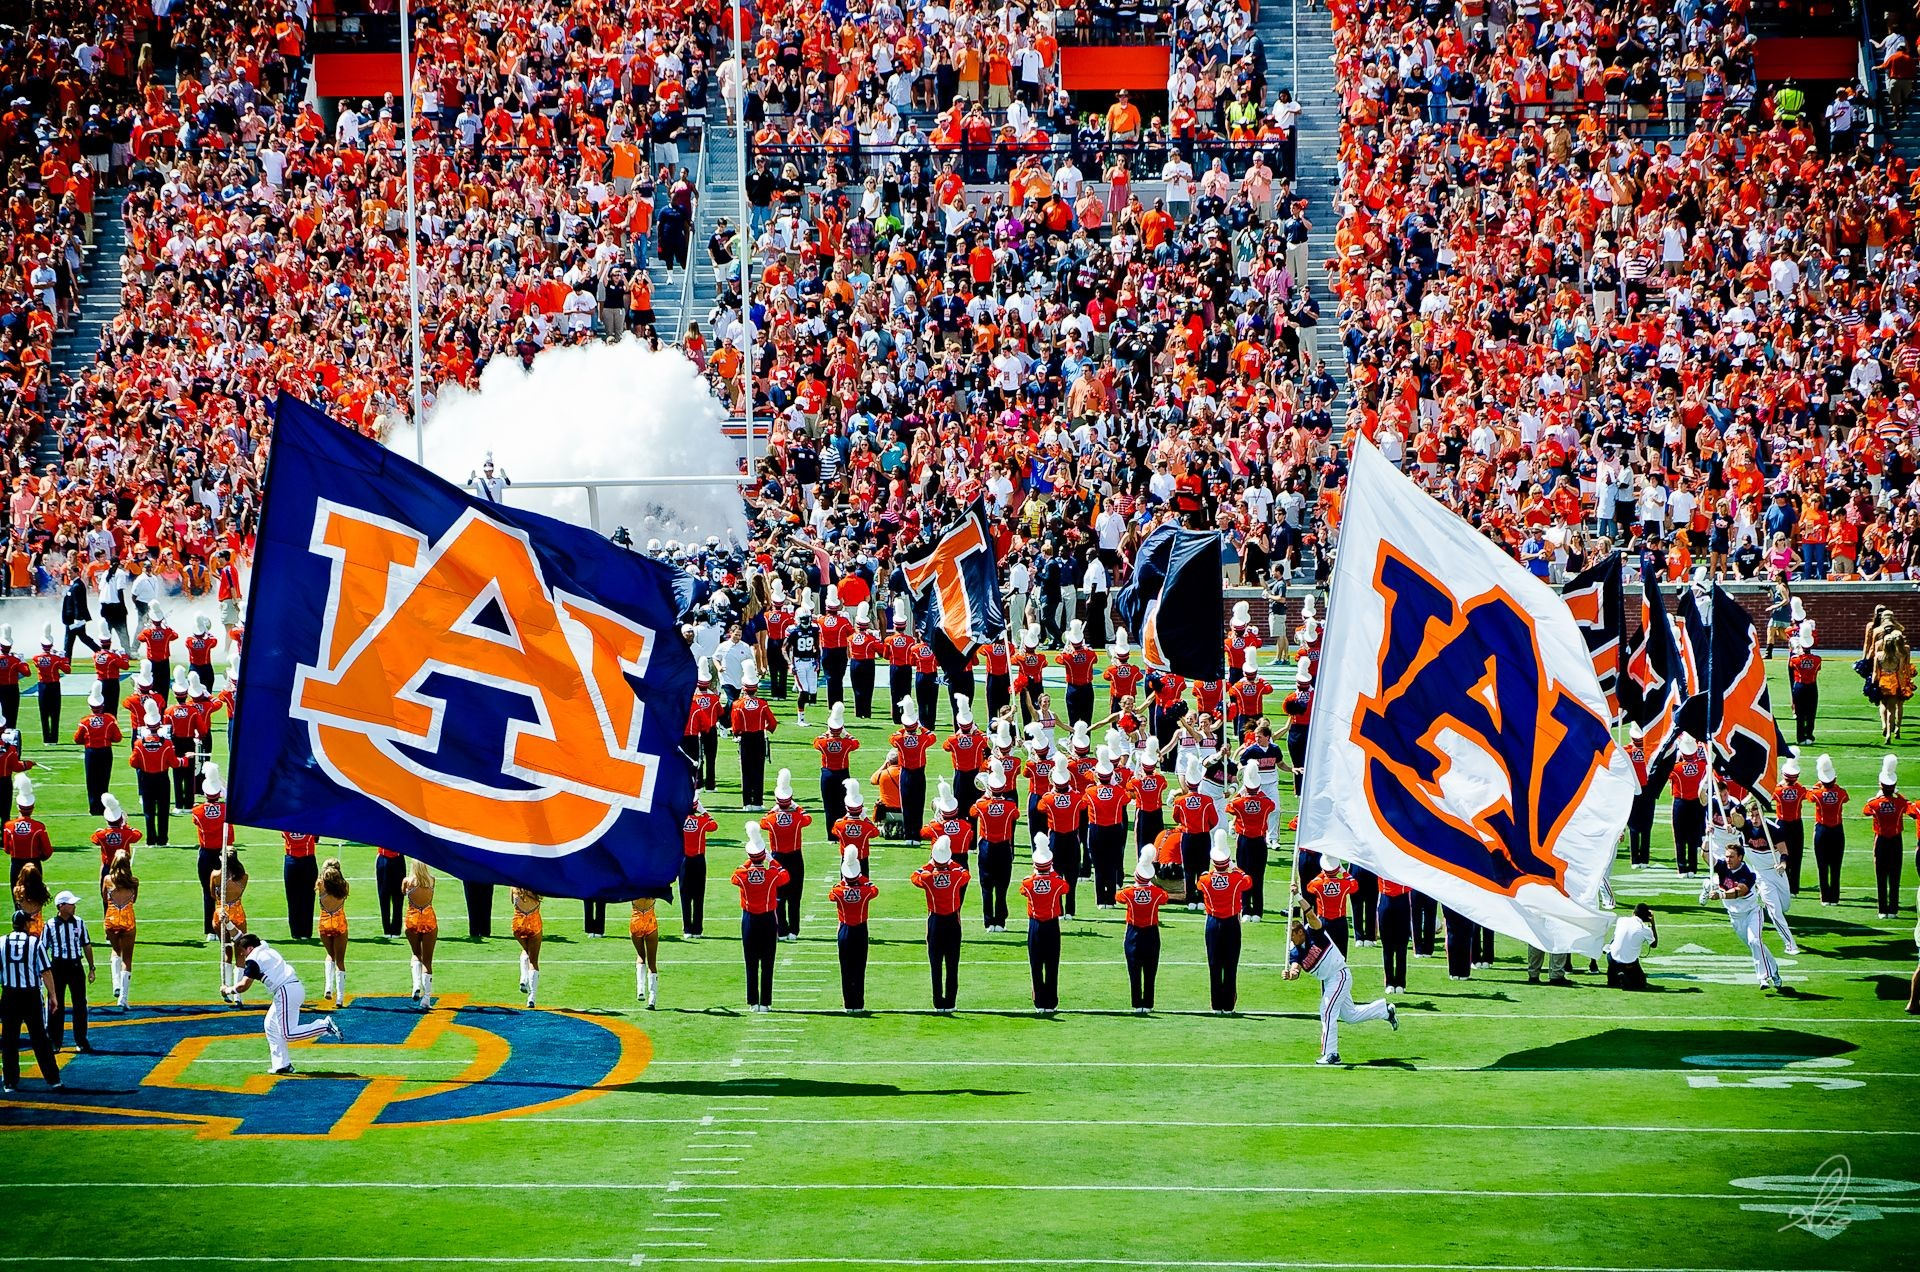 1920 x 1272 px Desktop Backgrounds – auburn tigers picture by Buster Backer  for – TWD